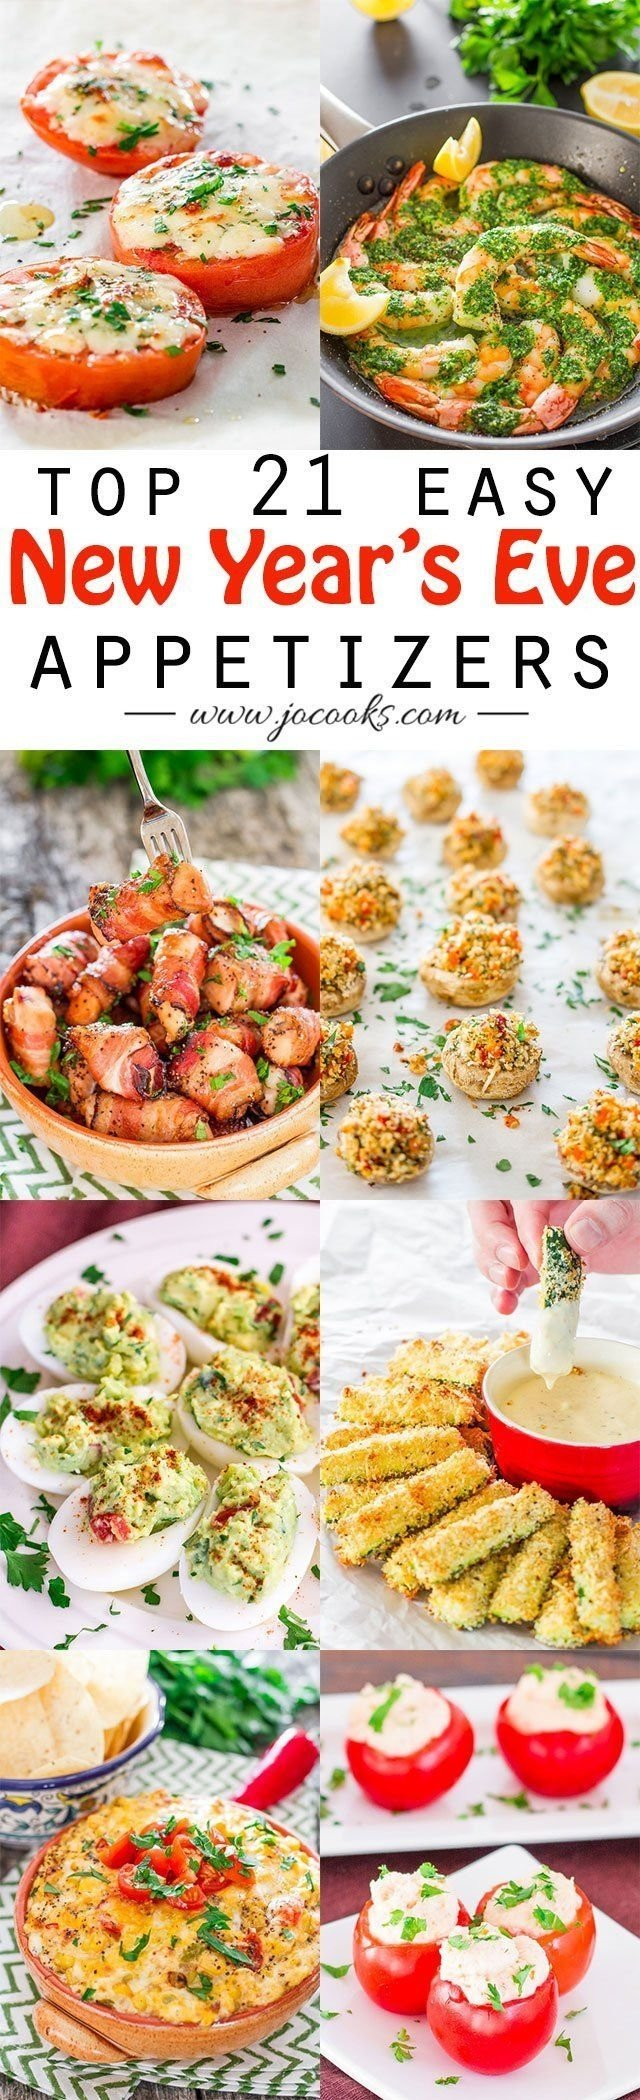 10 Unique New Years Eve Finger Food Ideas 17 best holiday apps images on pinterest cooking recipes box 2021